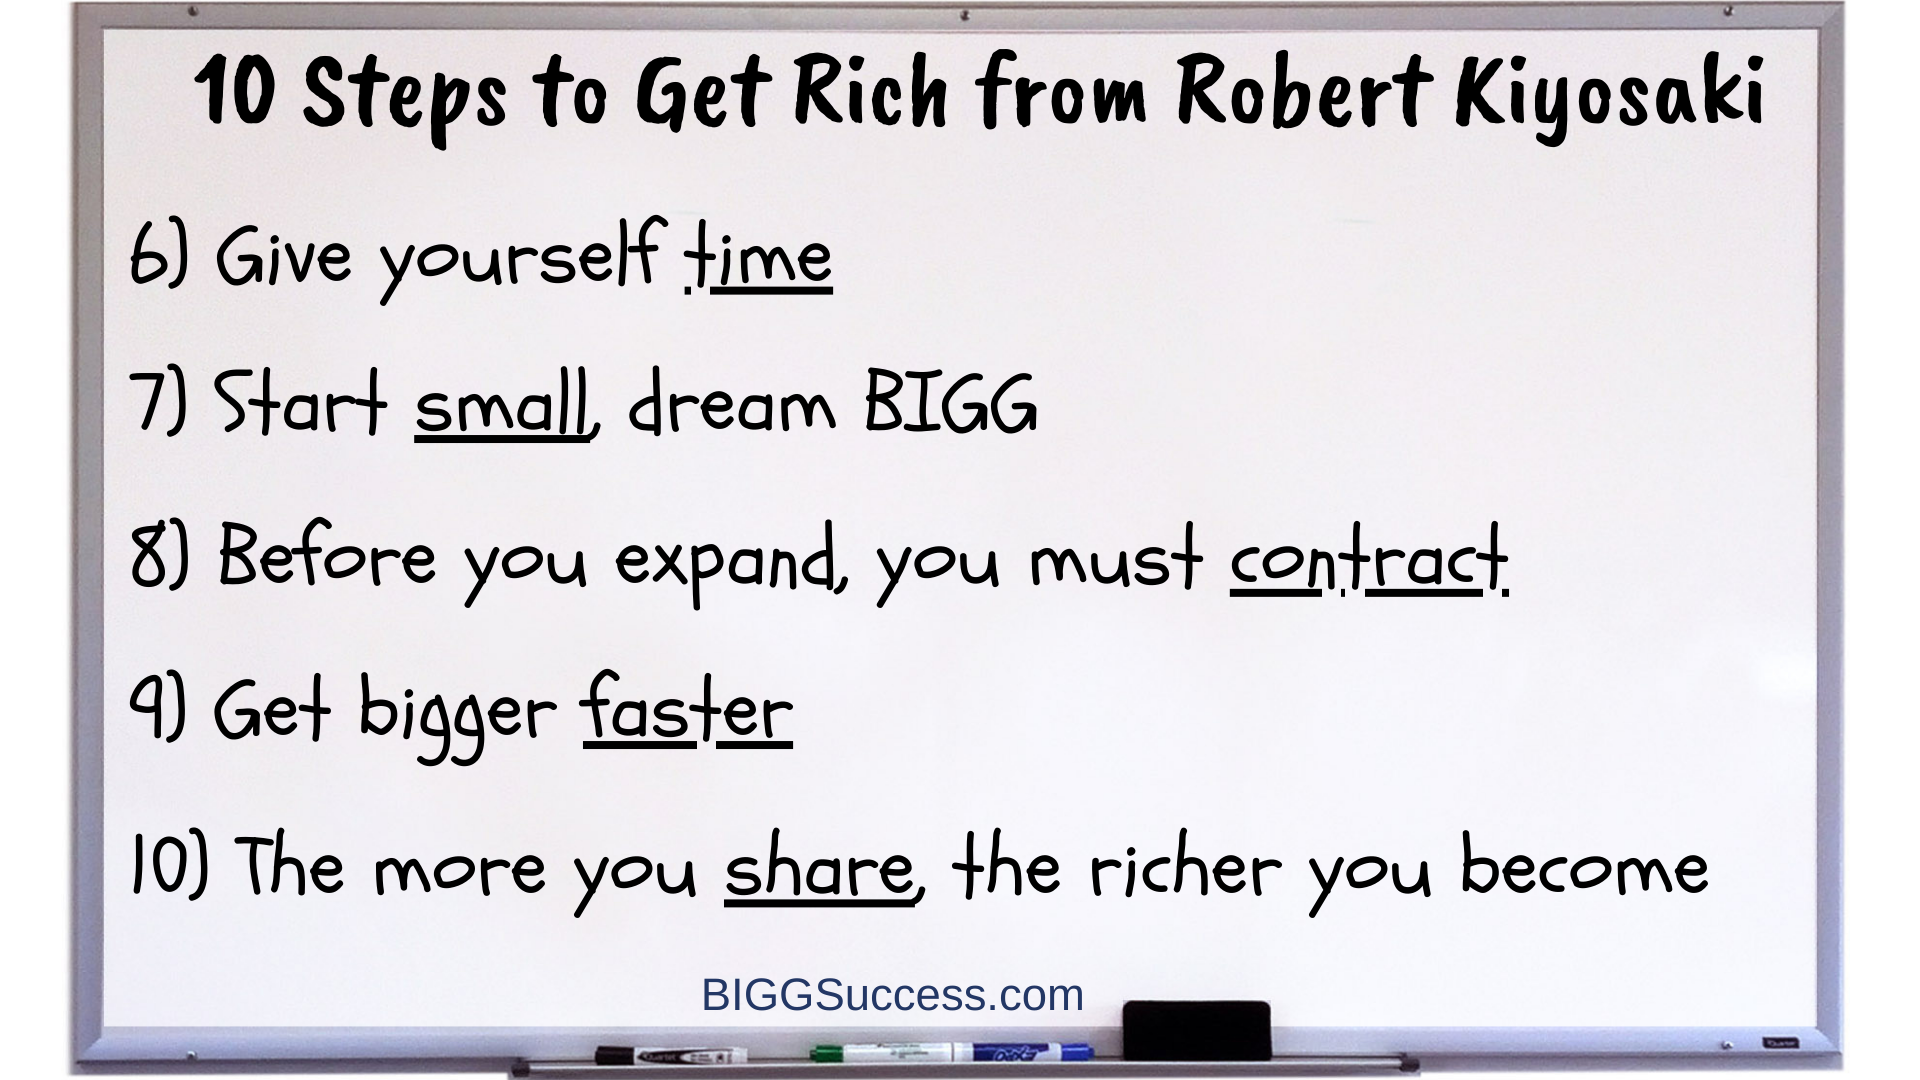 whiteboard 1062 - 10 steps to get rich 6-10